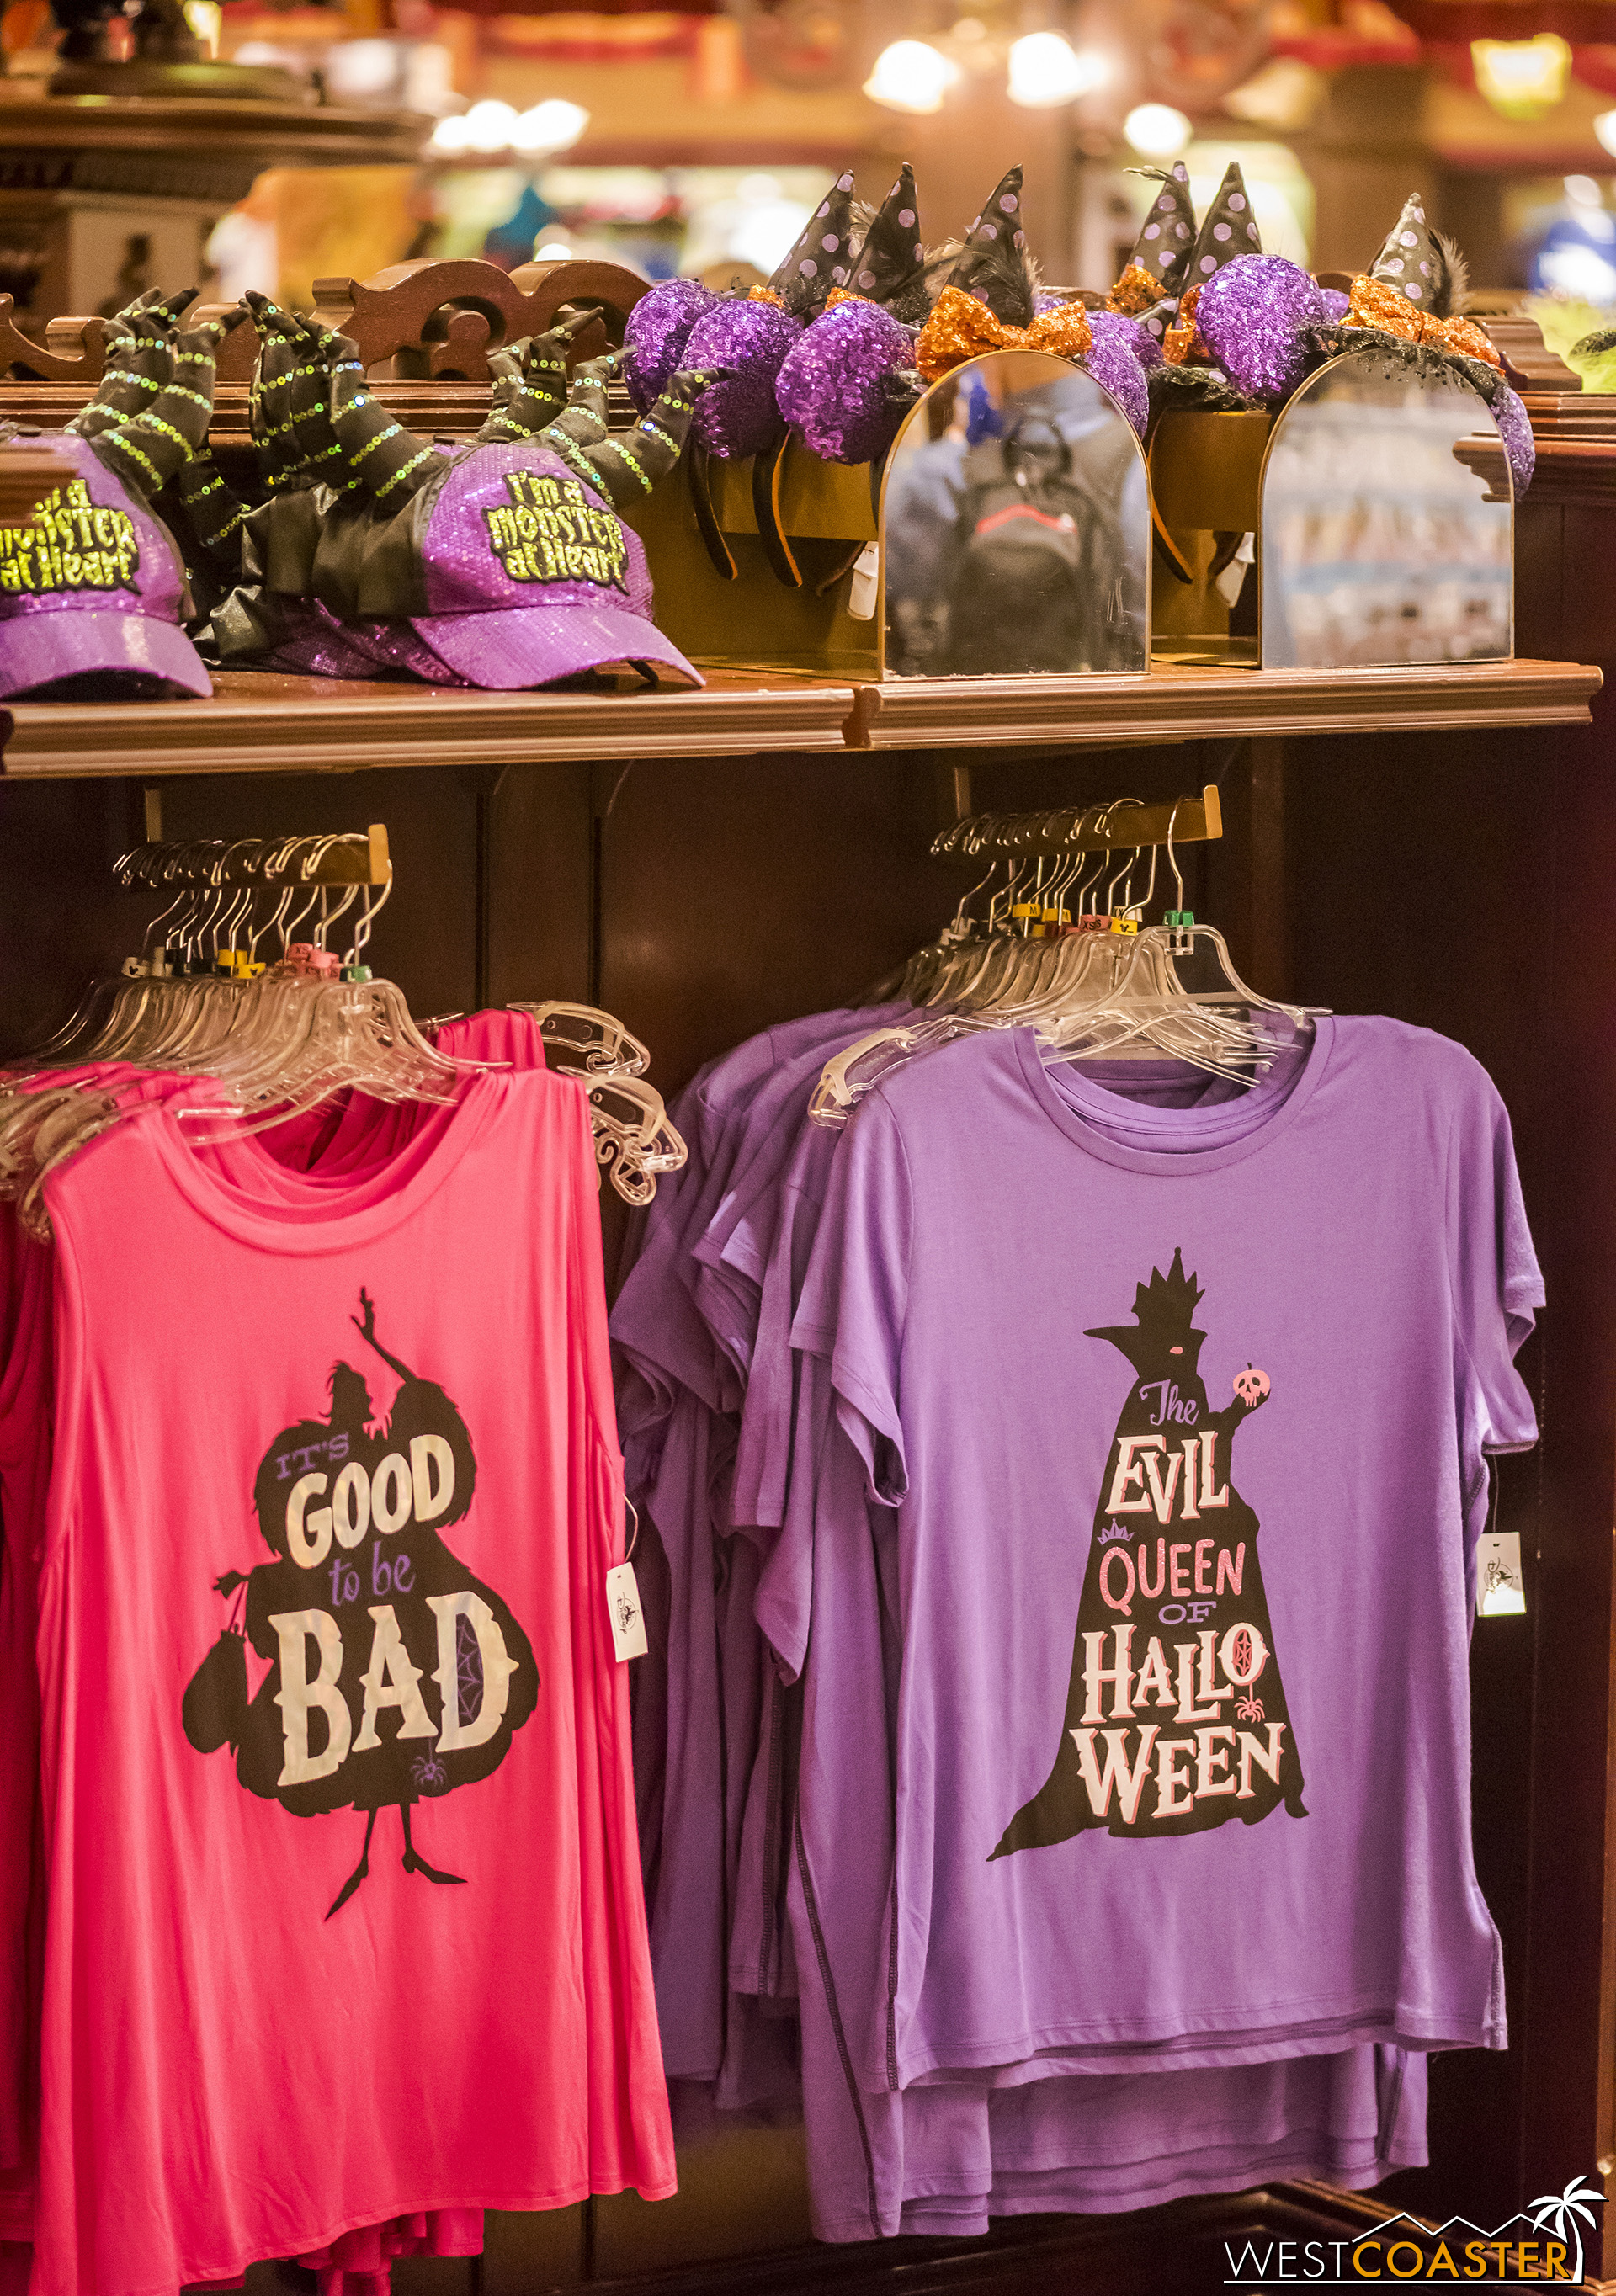 There is a ton of Halloween merchandise at Disneyland, including stuff apparently marketed toward millennials culture?